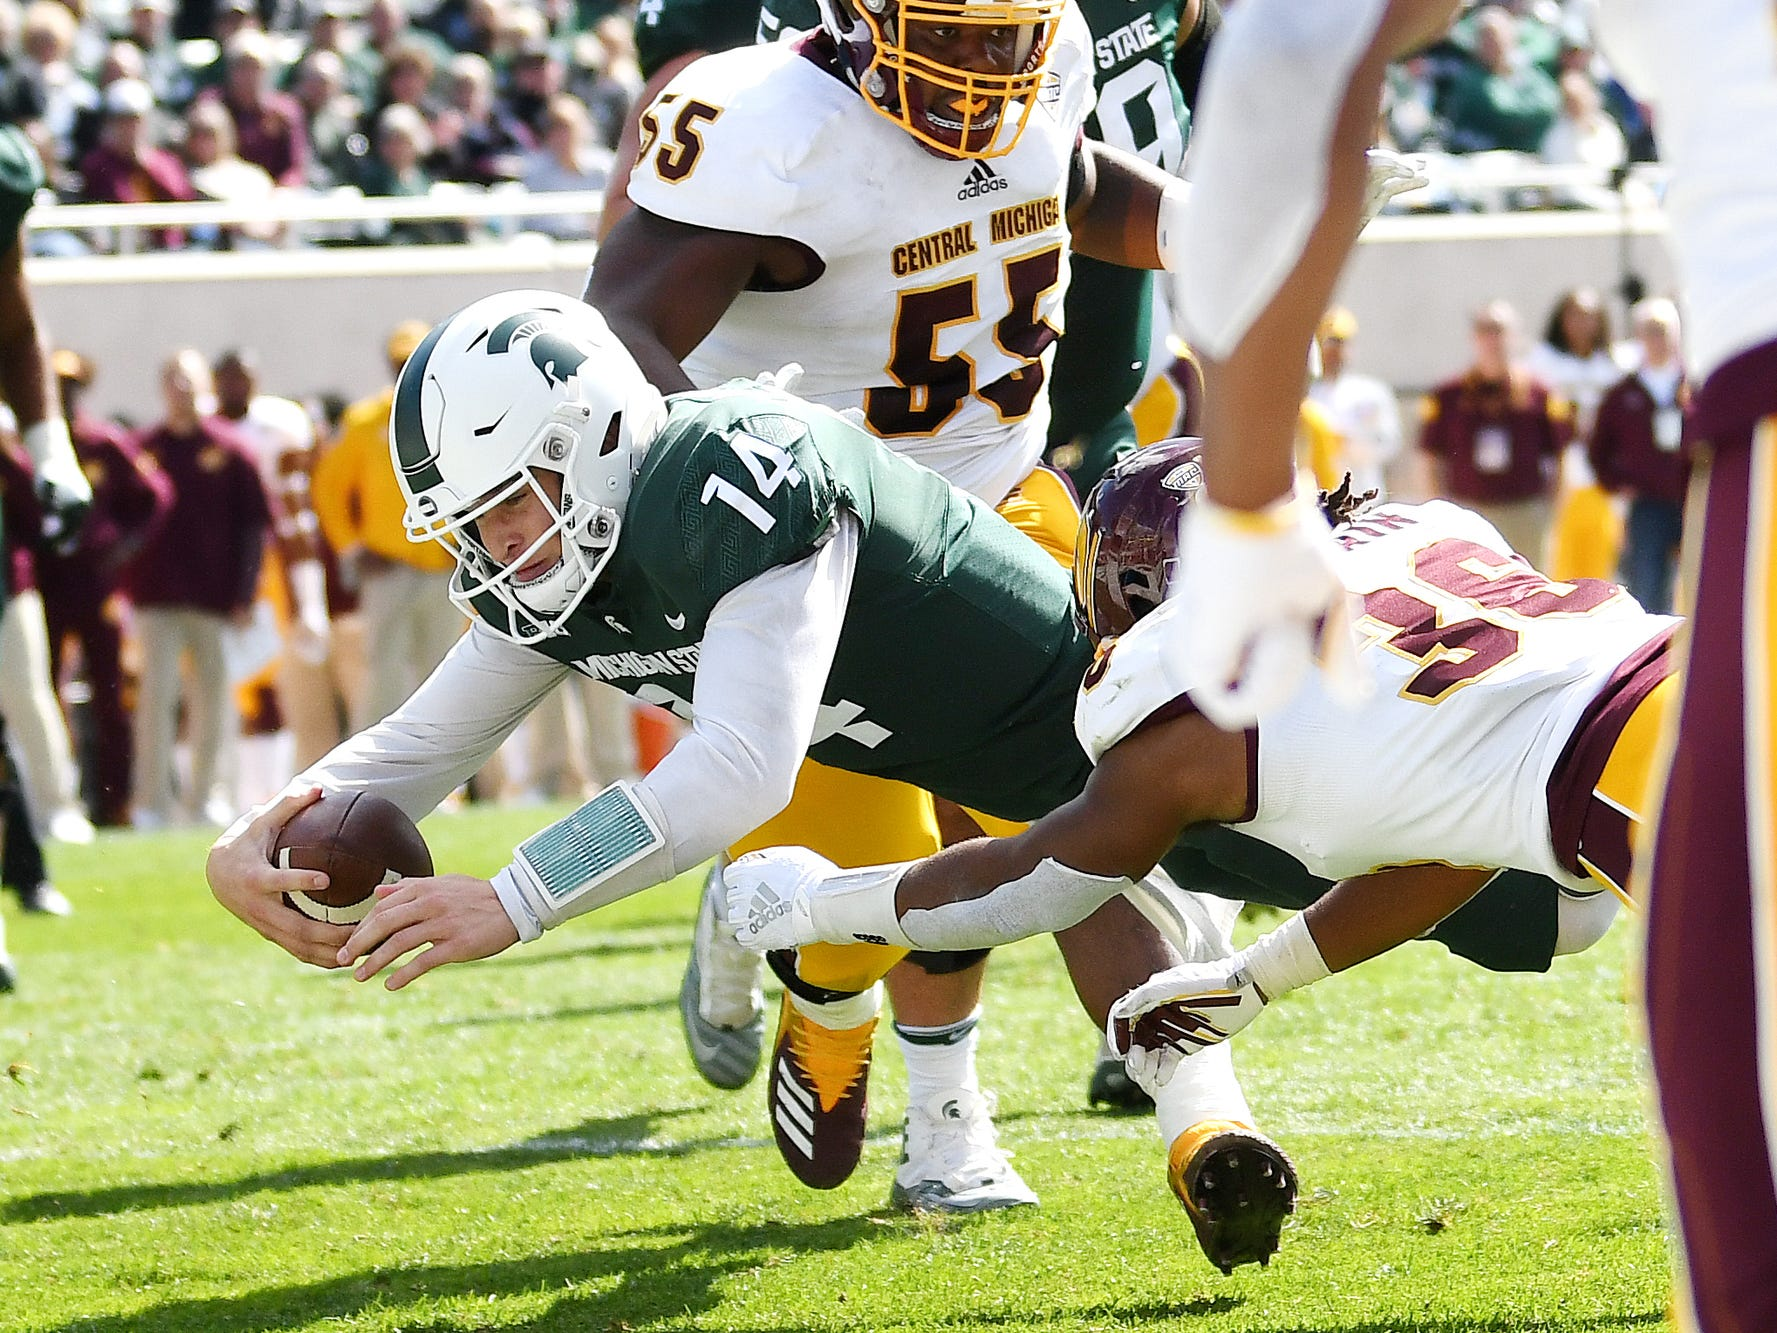 Michigan State's Brian Lewerke dives for a touchdown during the second quarter on Saturday, Sept. 29, 2018, at Spartan Stadium in East Lansing.